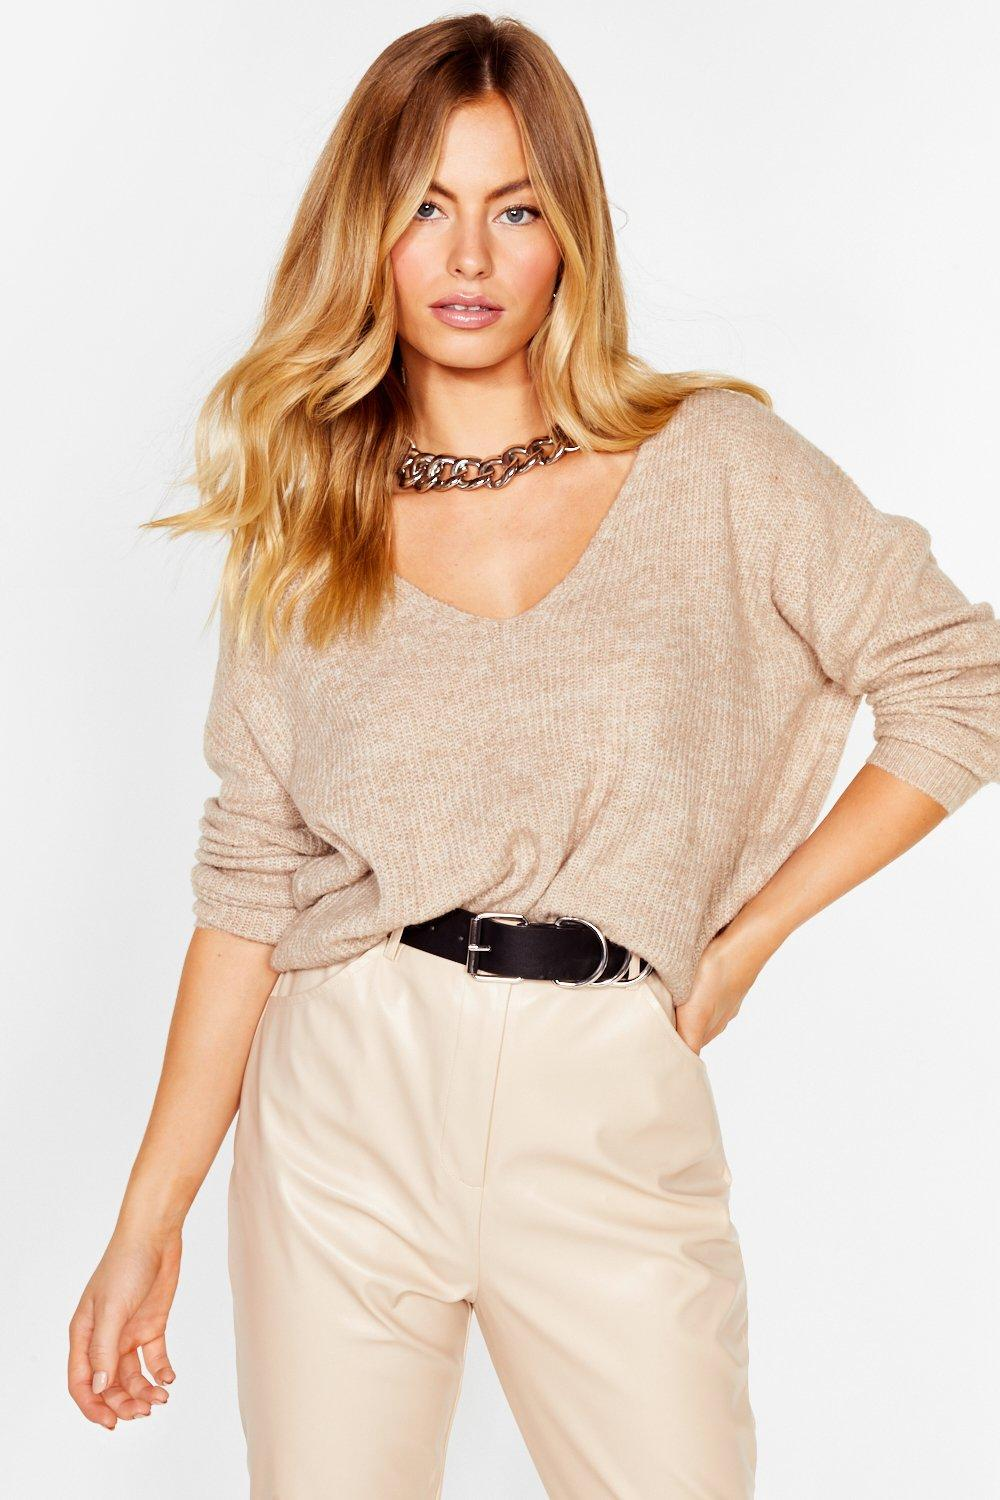 Image of Now You V It Knitted V-Neck Sweater